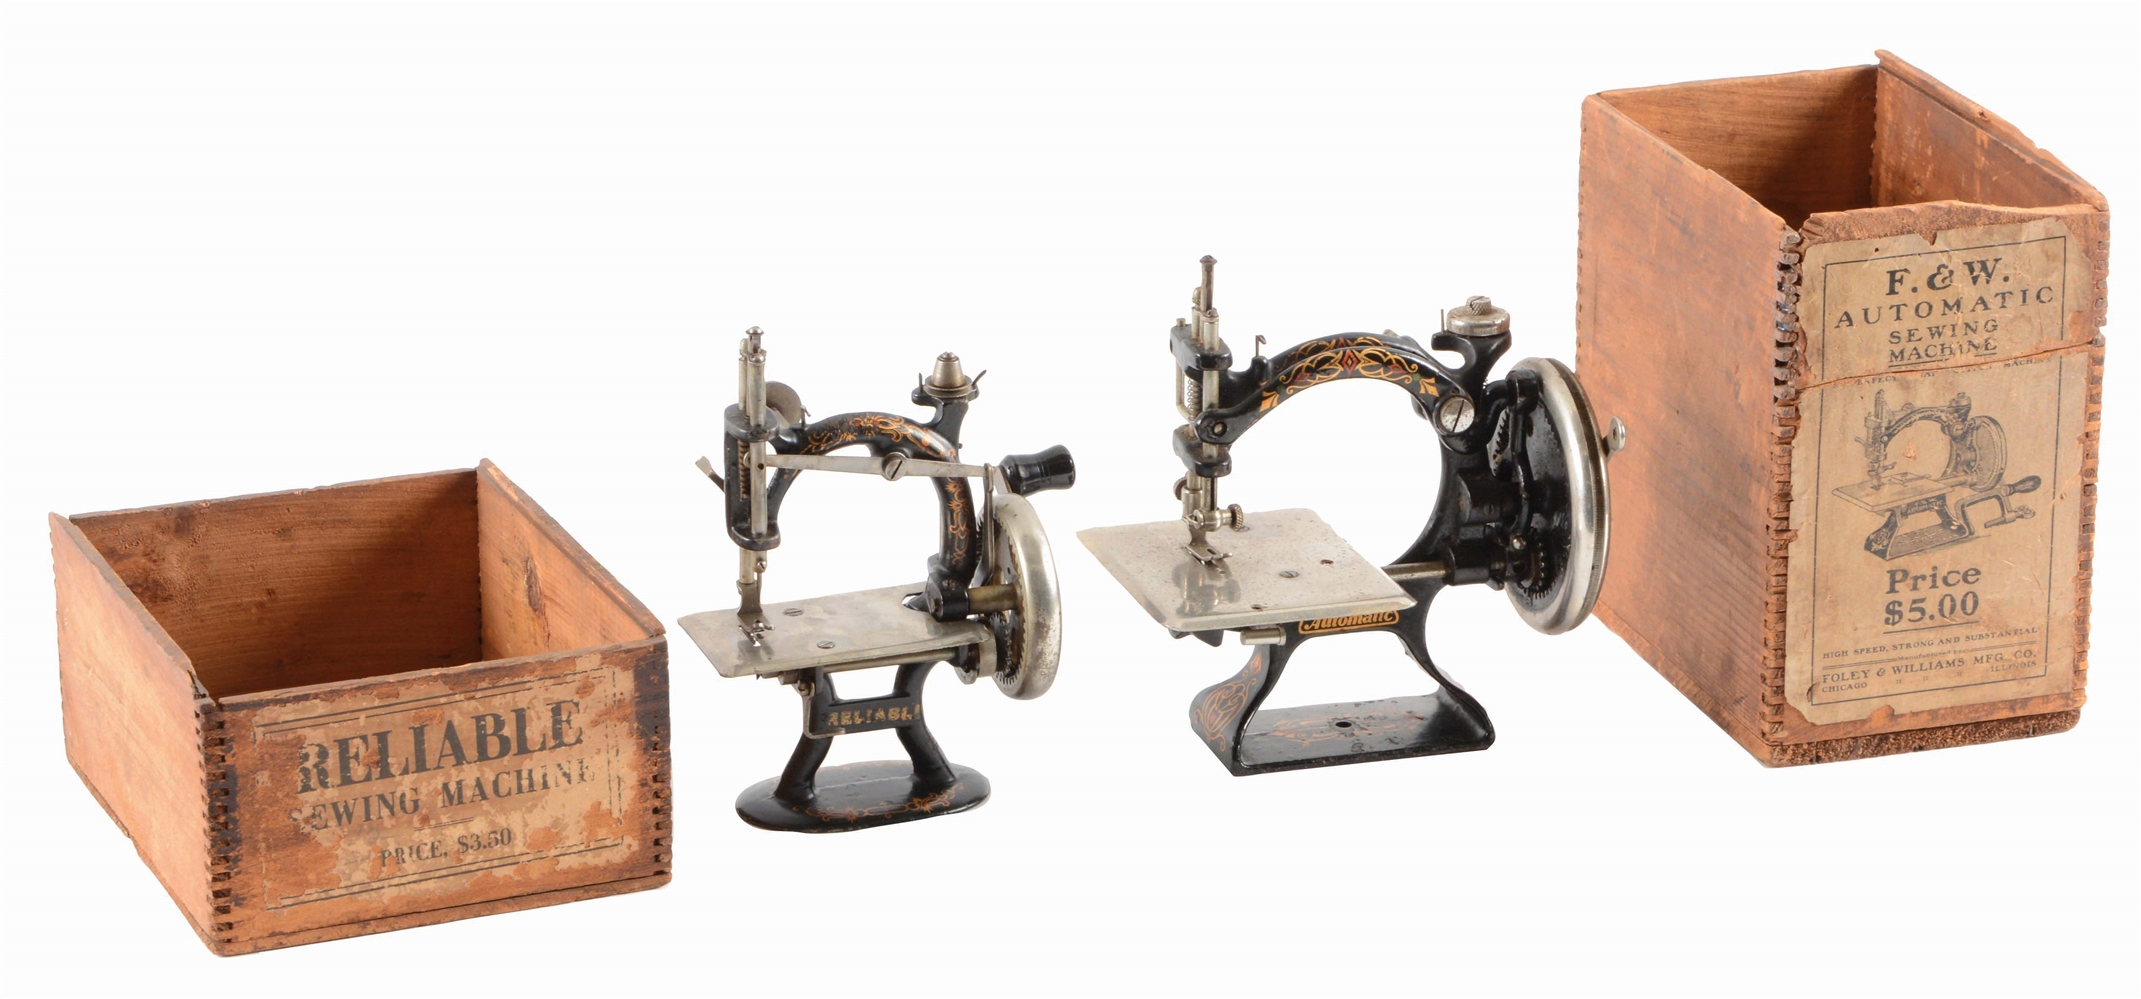 LOT OF 2: RELIABLE AND F & W SEWING MACHINES.